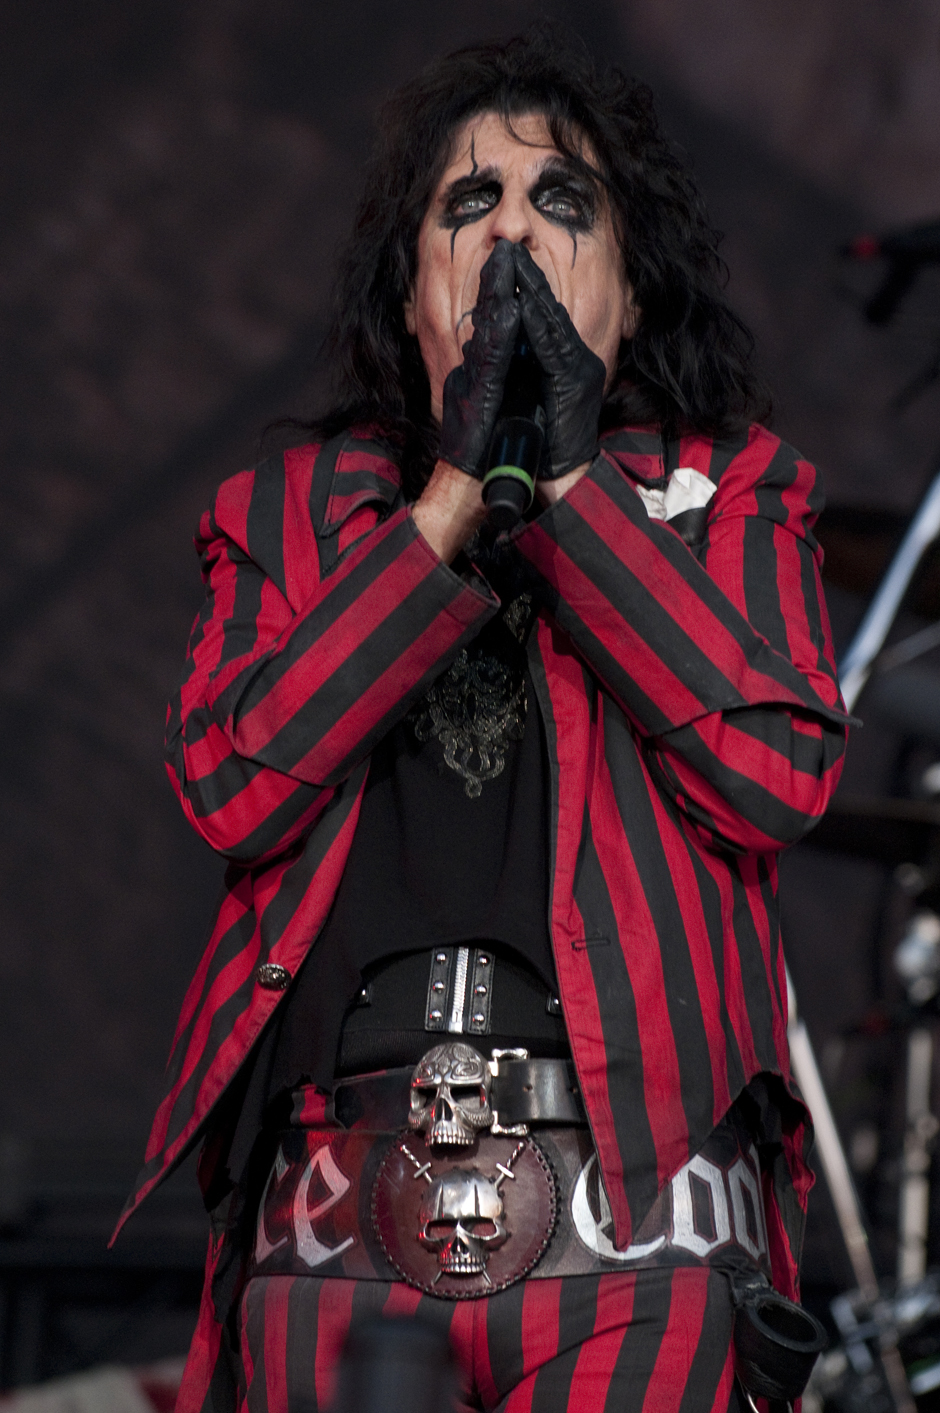 Alice Cooper live, Wacken Open Air 2013